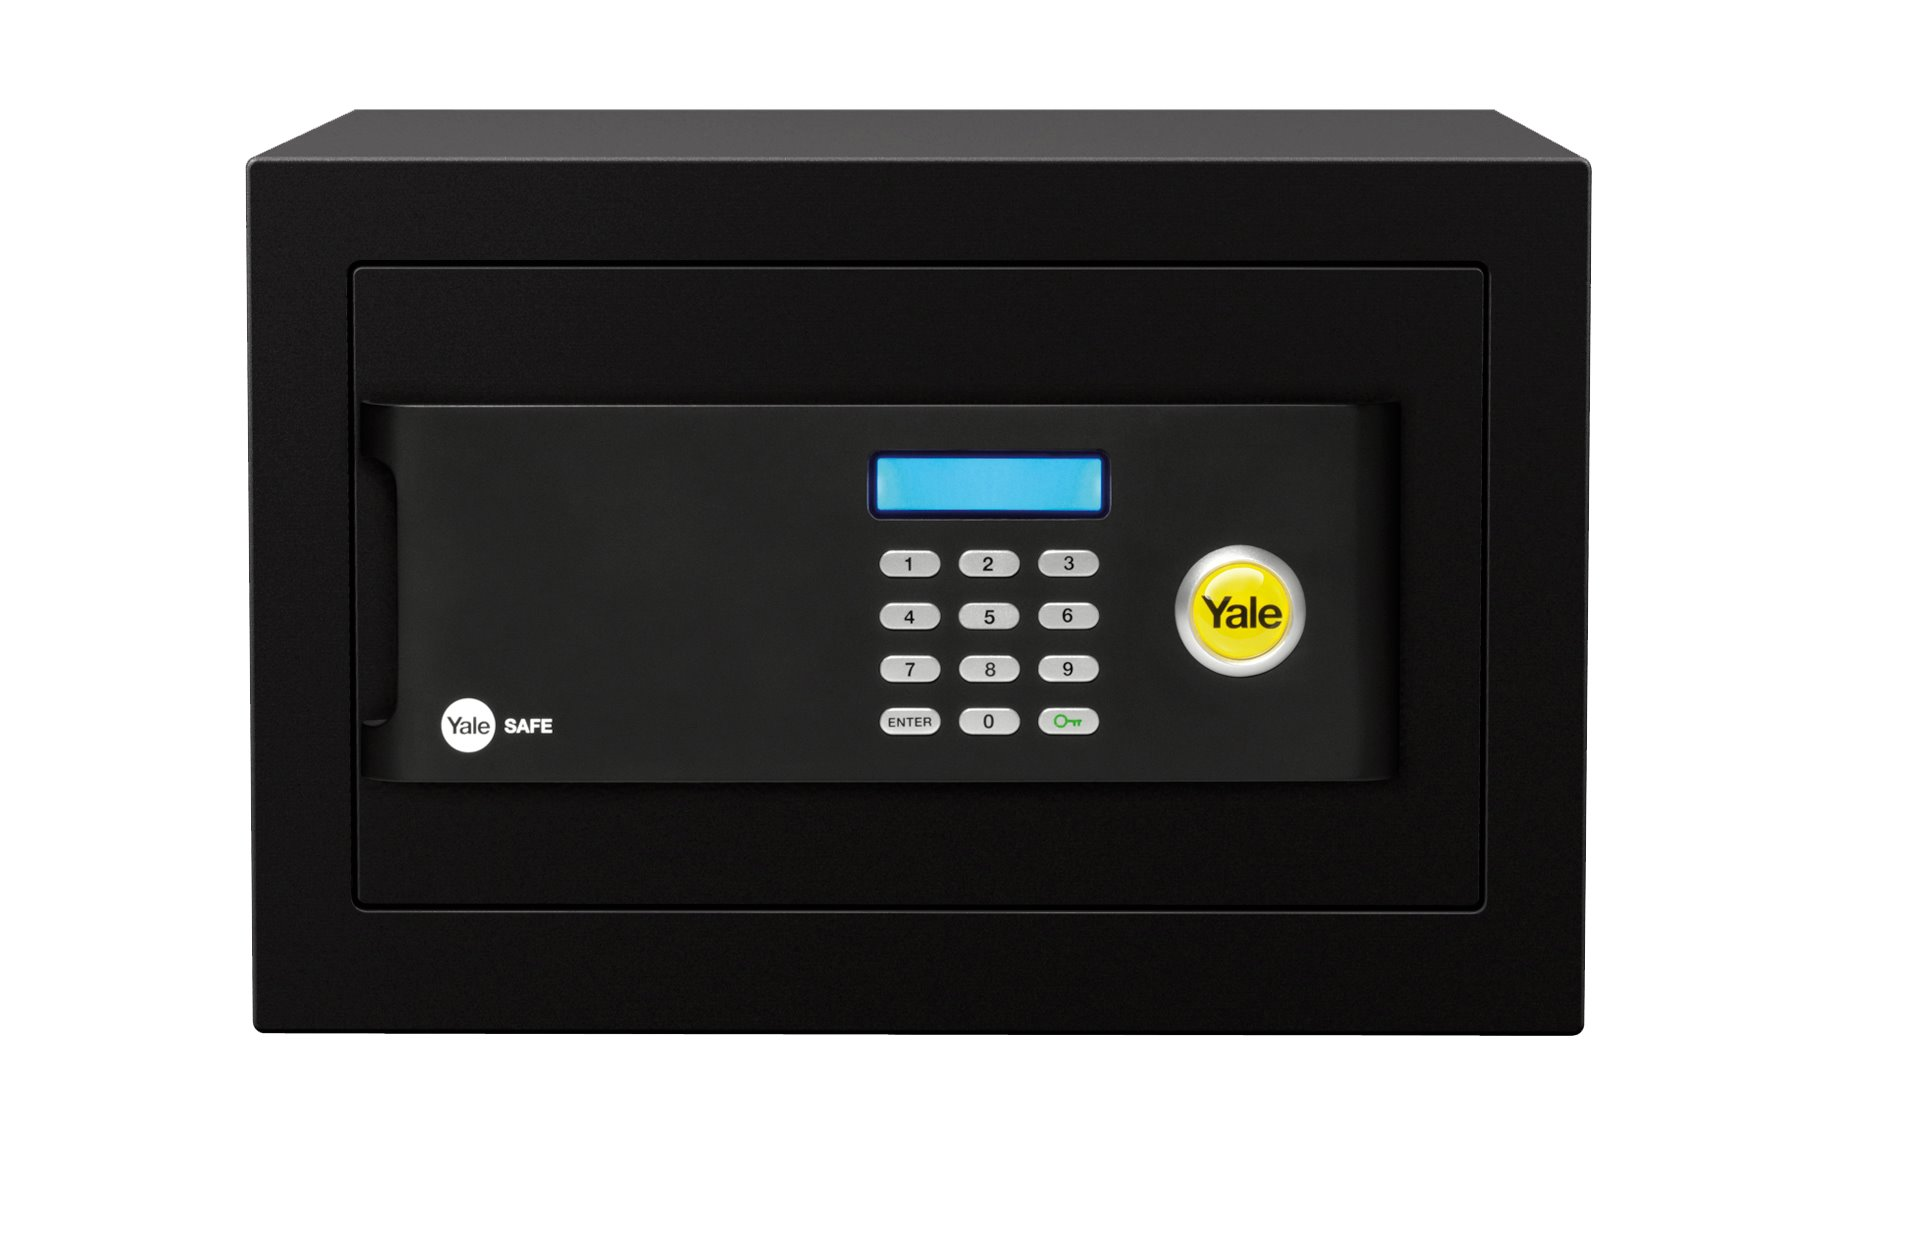 YSB/200/EB1 - Compact Safe